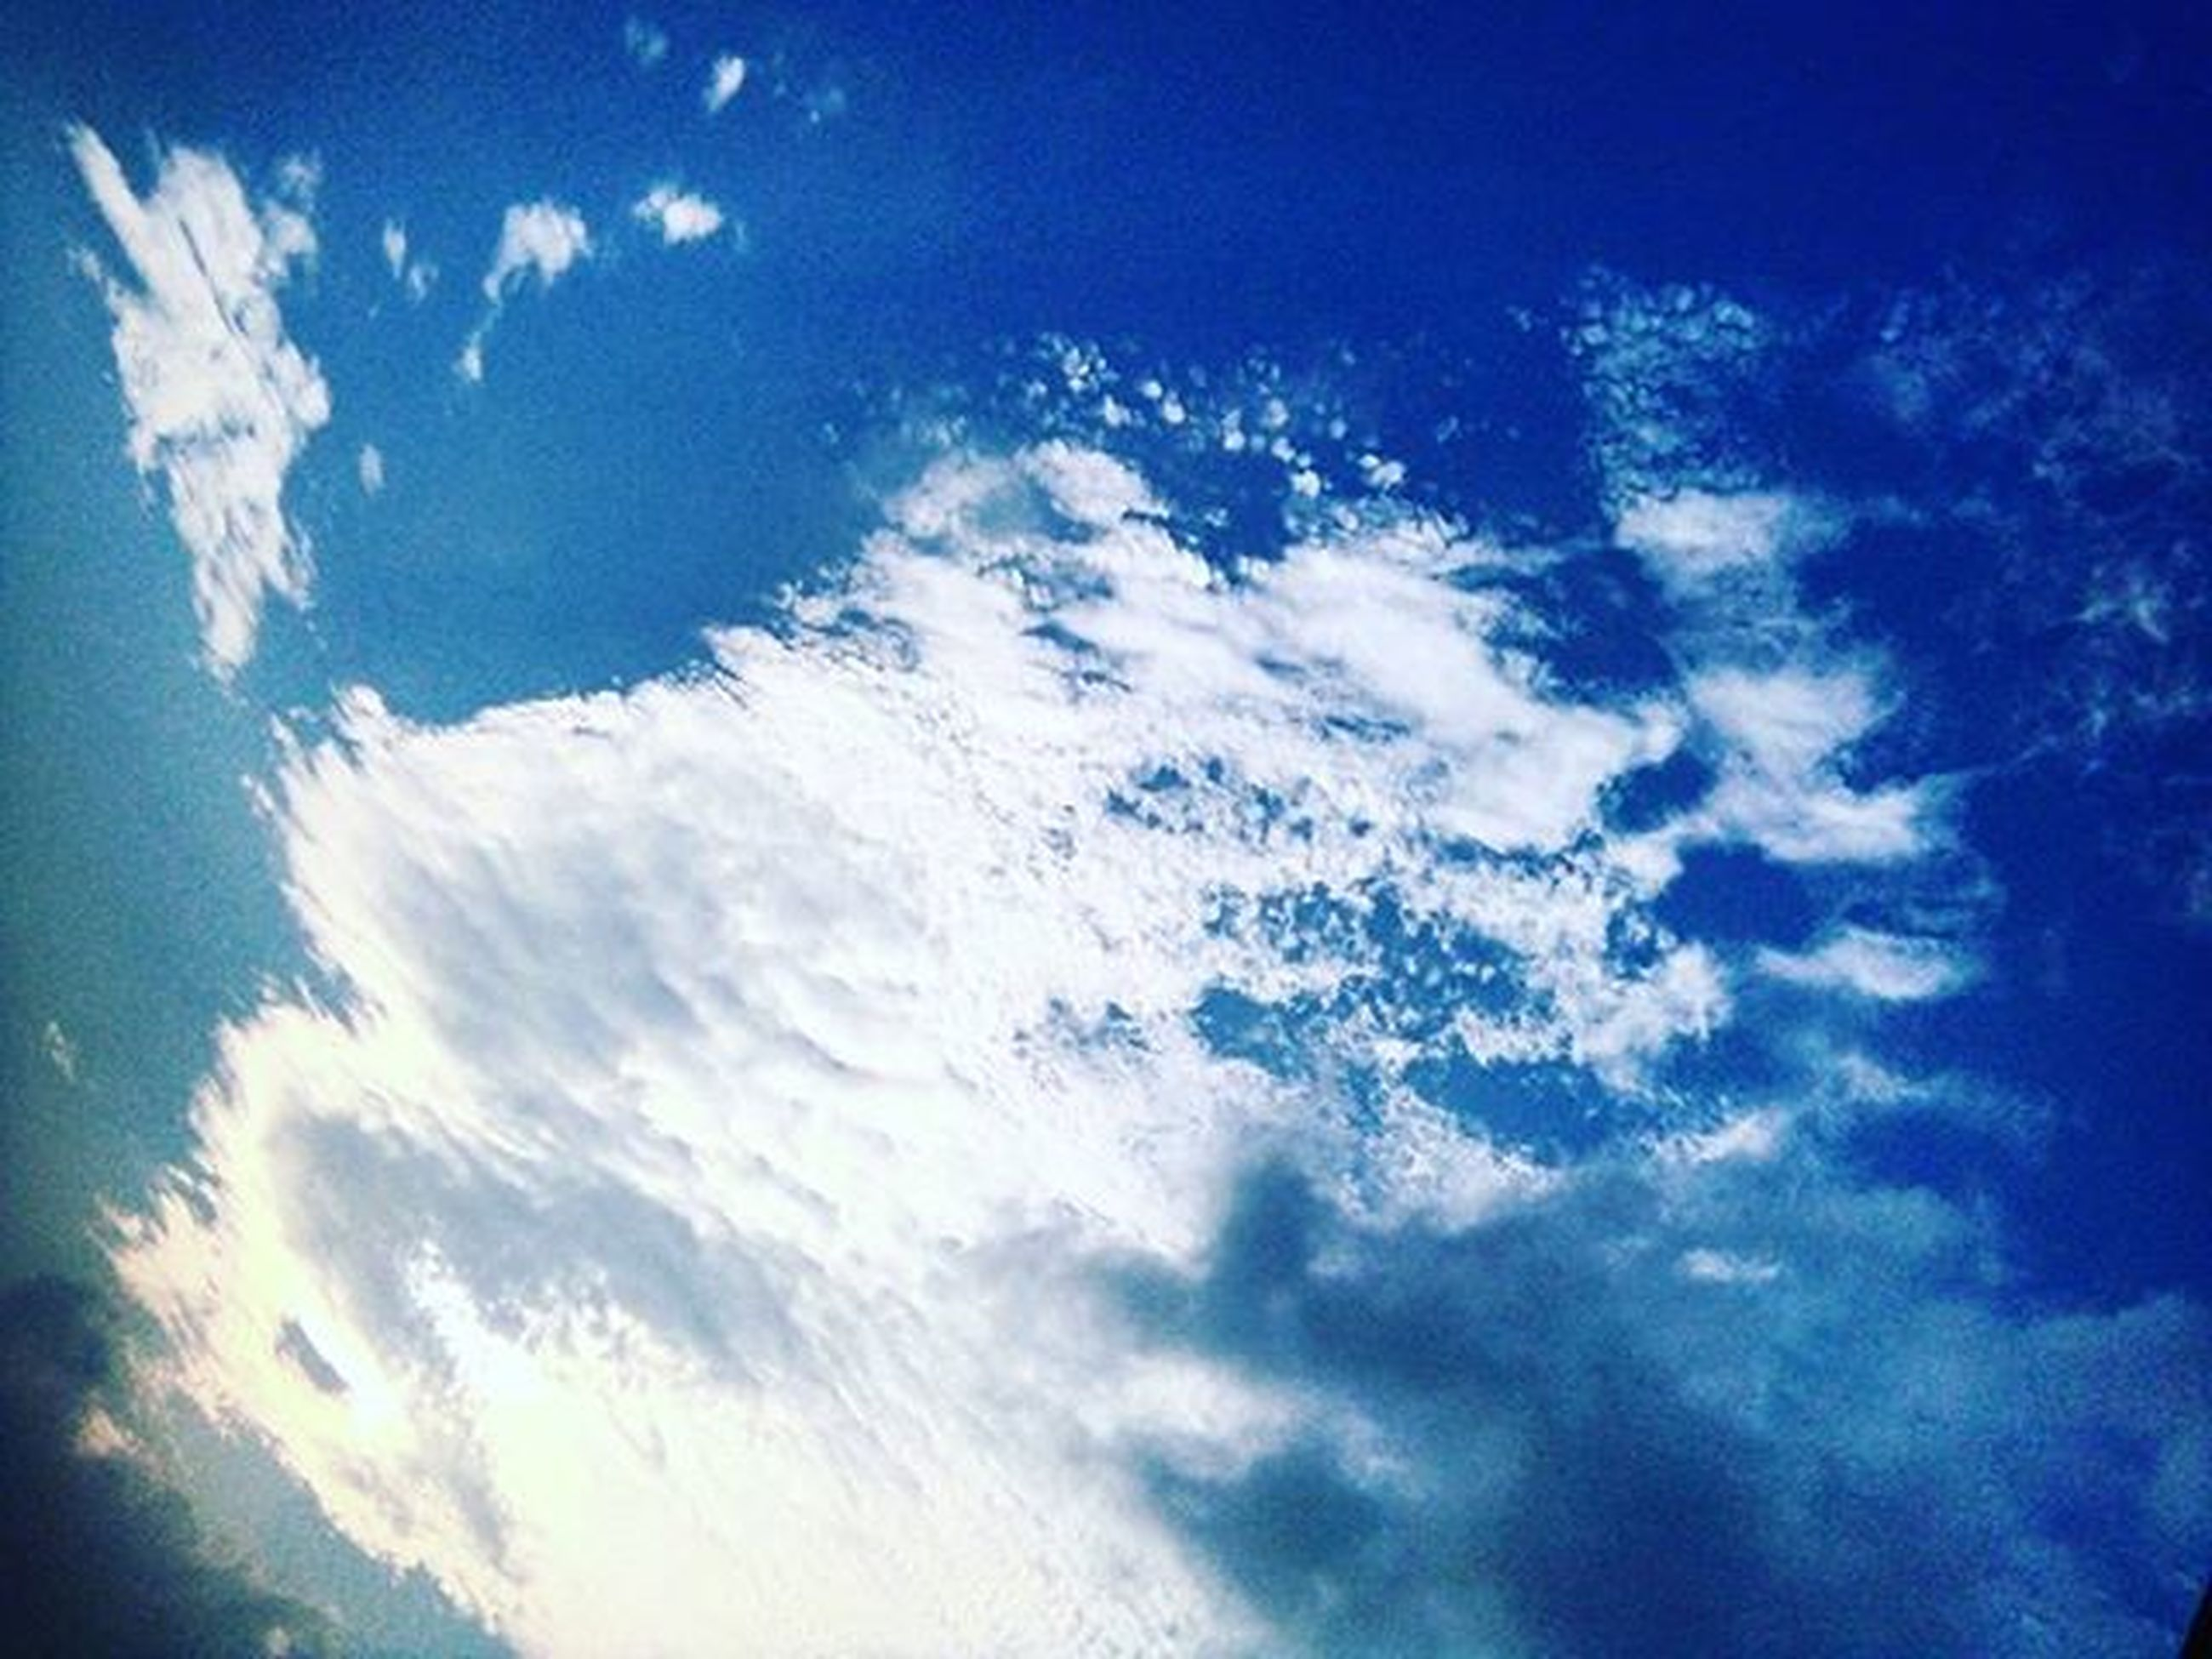 blue, sky, cloud - sky, low angle view, beauty in nature, scenics, nature, tranquility, sky only, tranquil scene, idyllic, cloudscape, cloud, sunlight, outdoors, cloudy, no people, aerial view, sunbeam, majestic